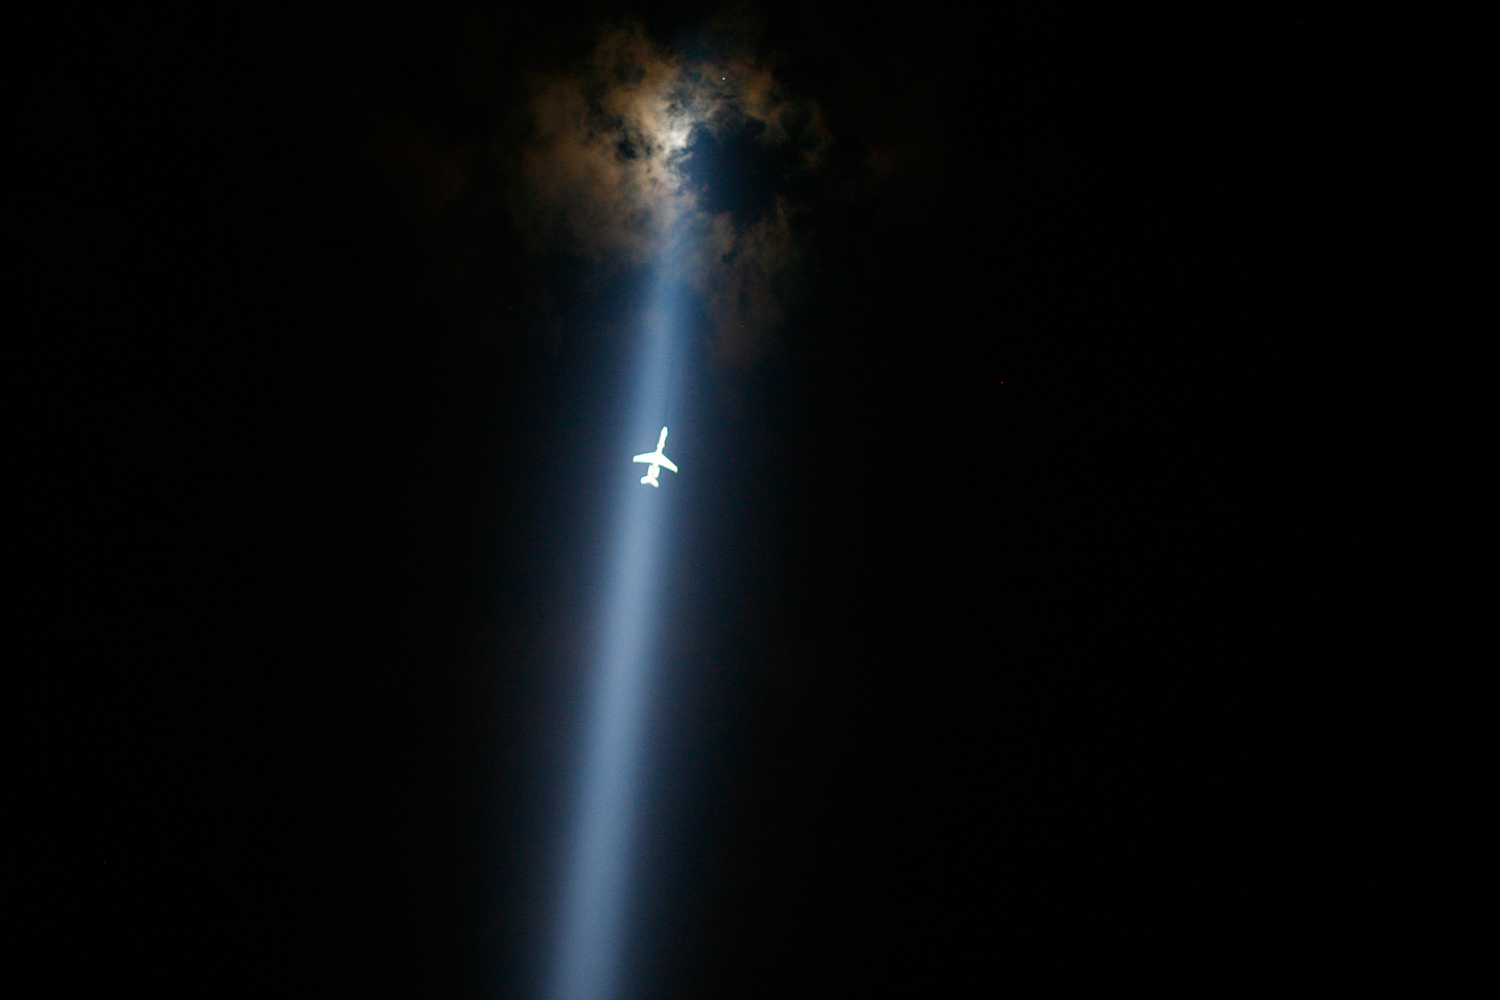 September 10, 2011. A plane flies through the  Tribute in Lights  in lower Manhattan in New York.